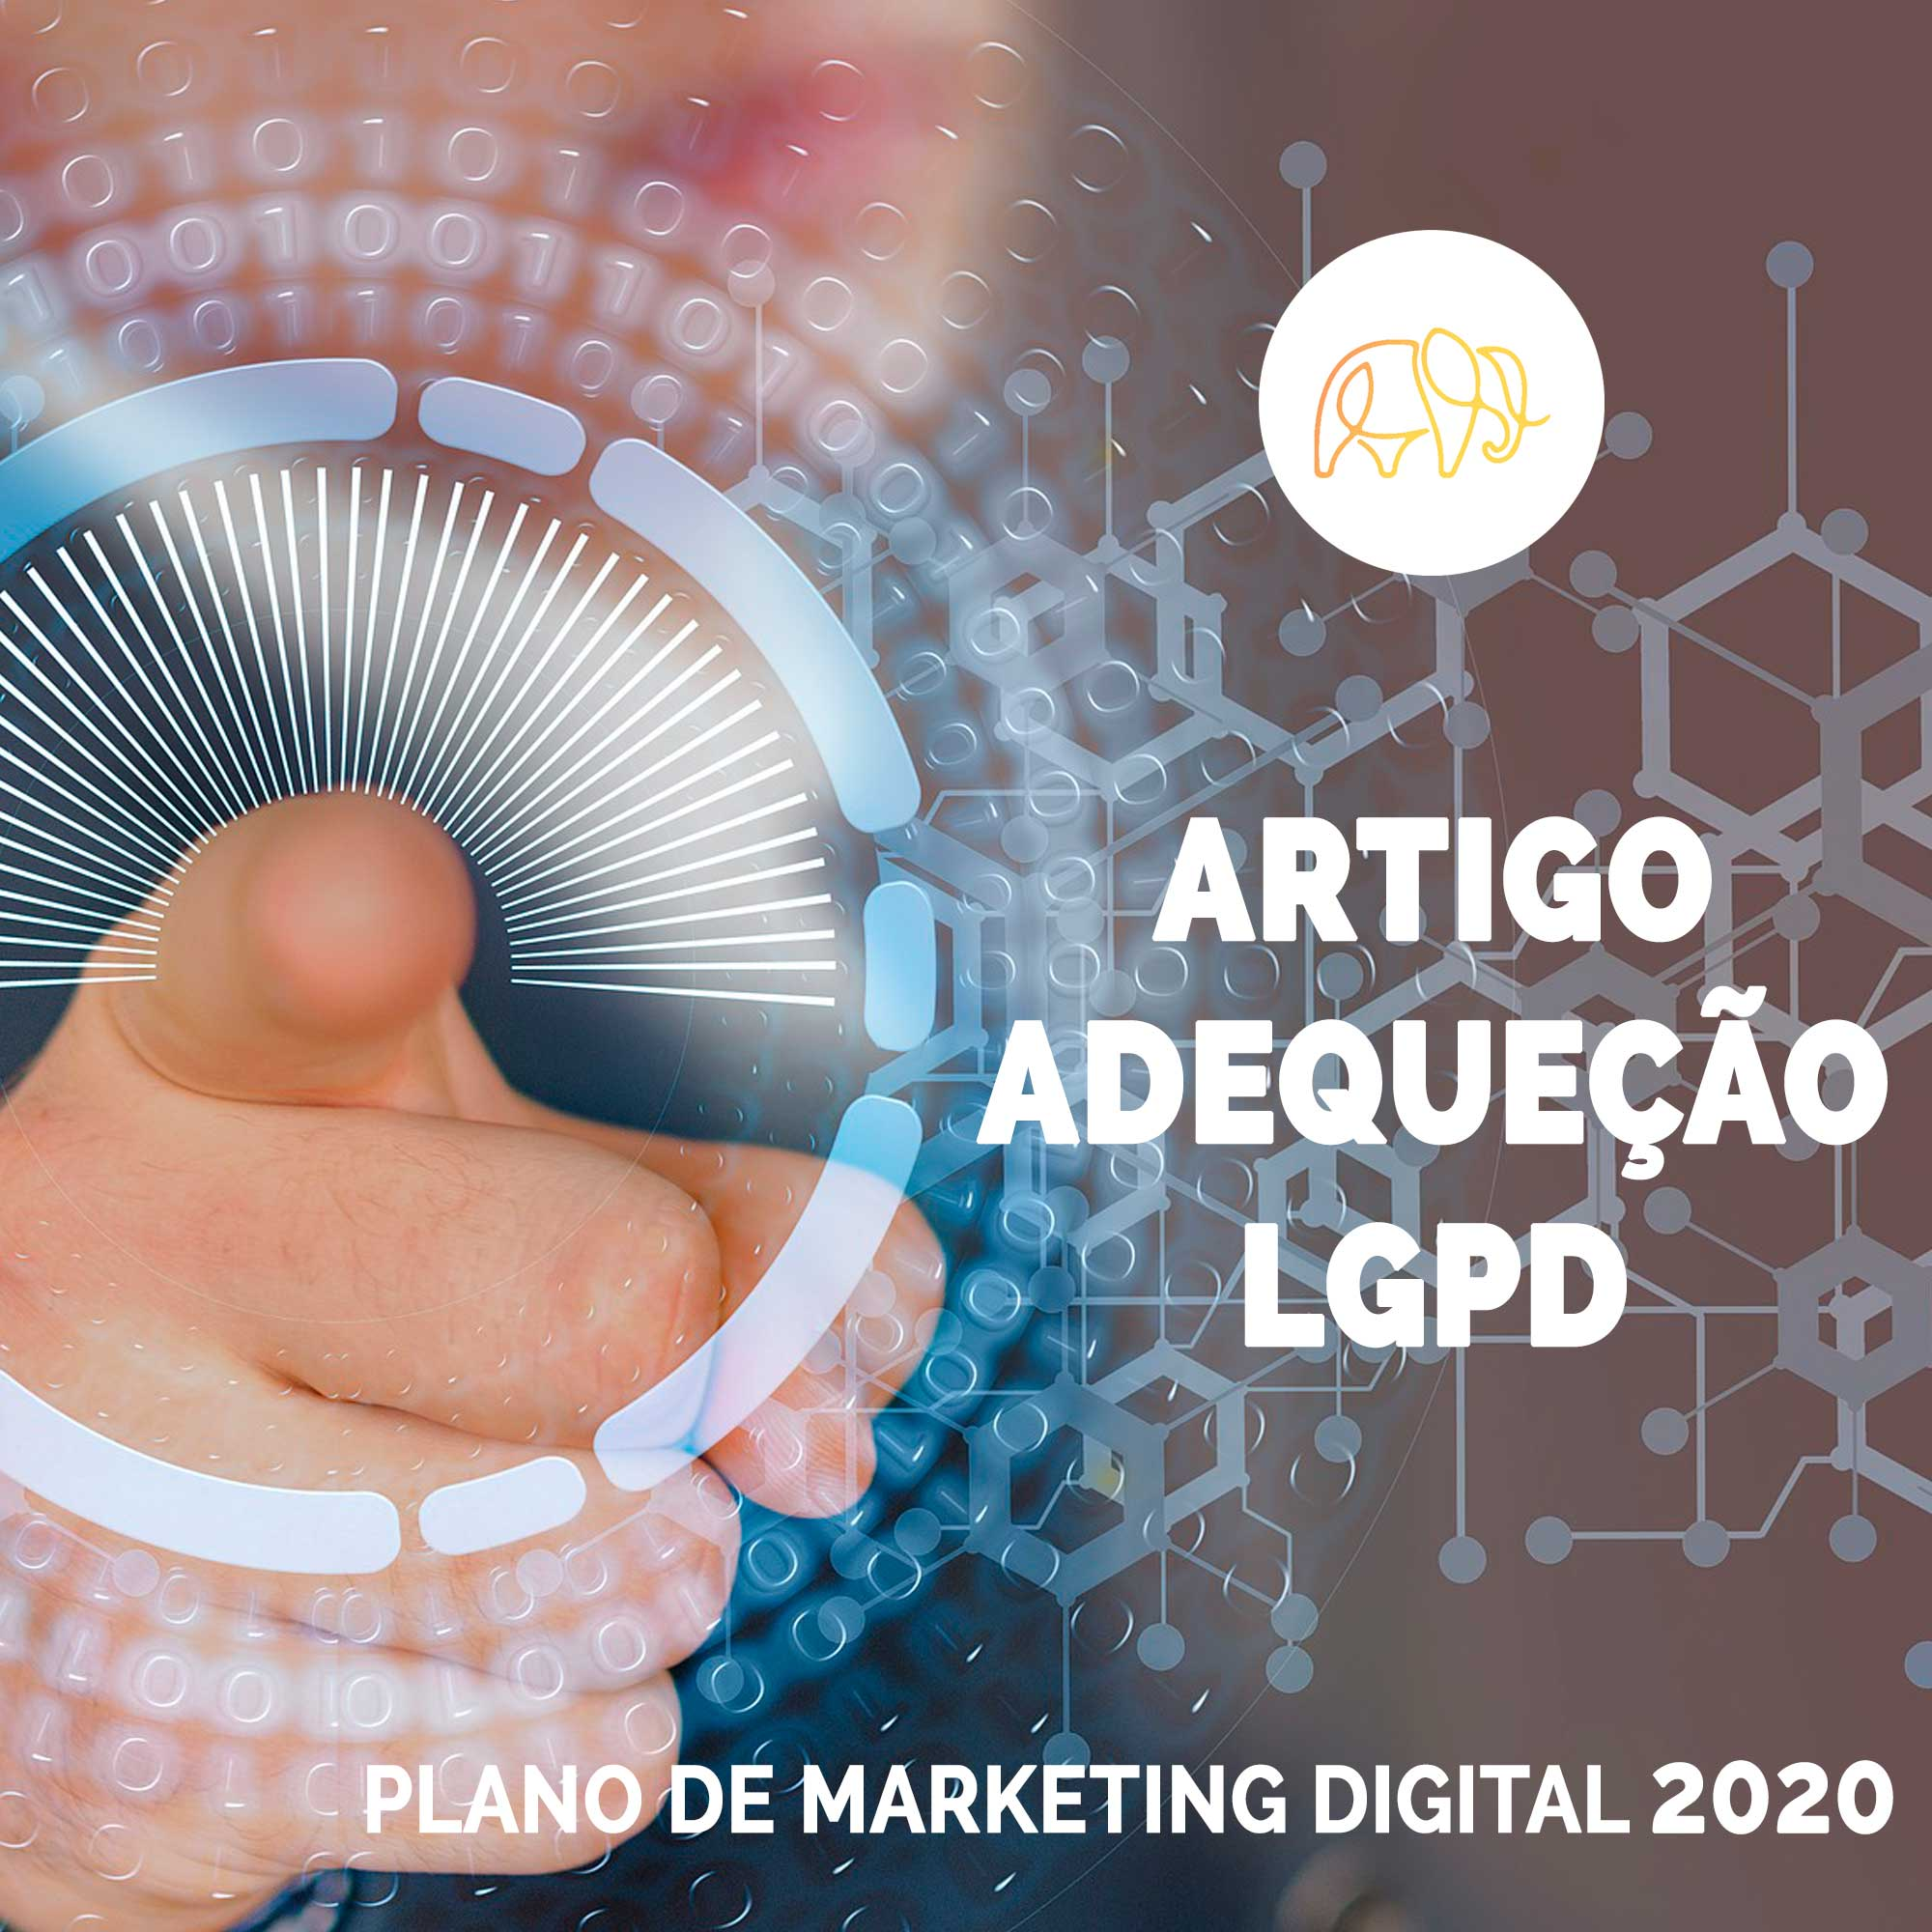 Adequação LGPD - Plano de Marketing Digital